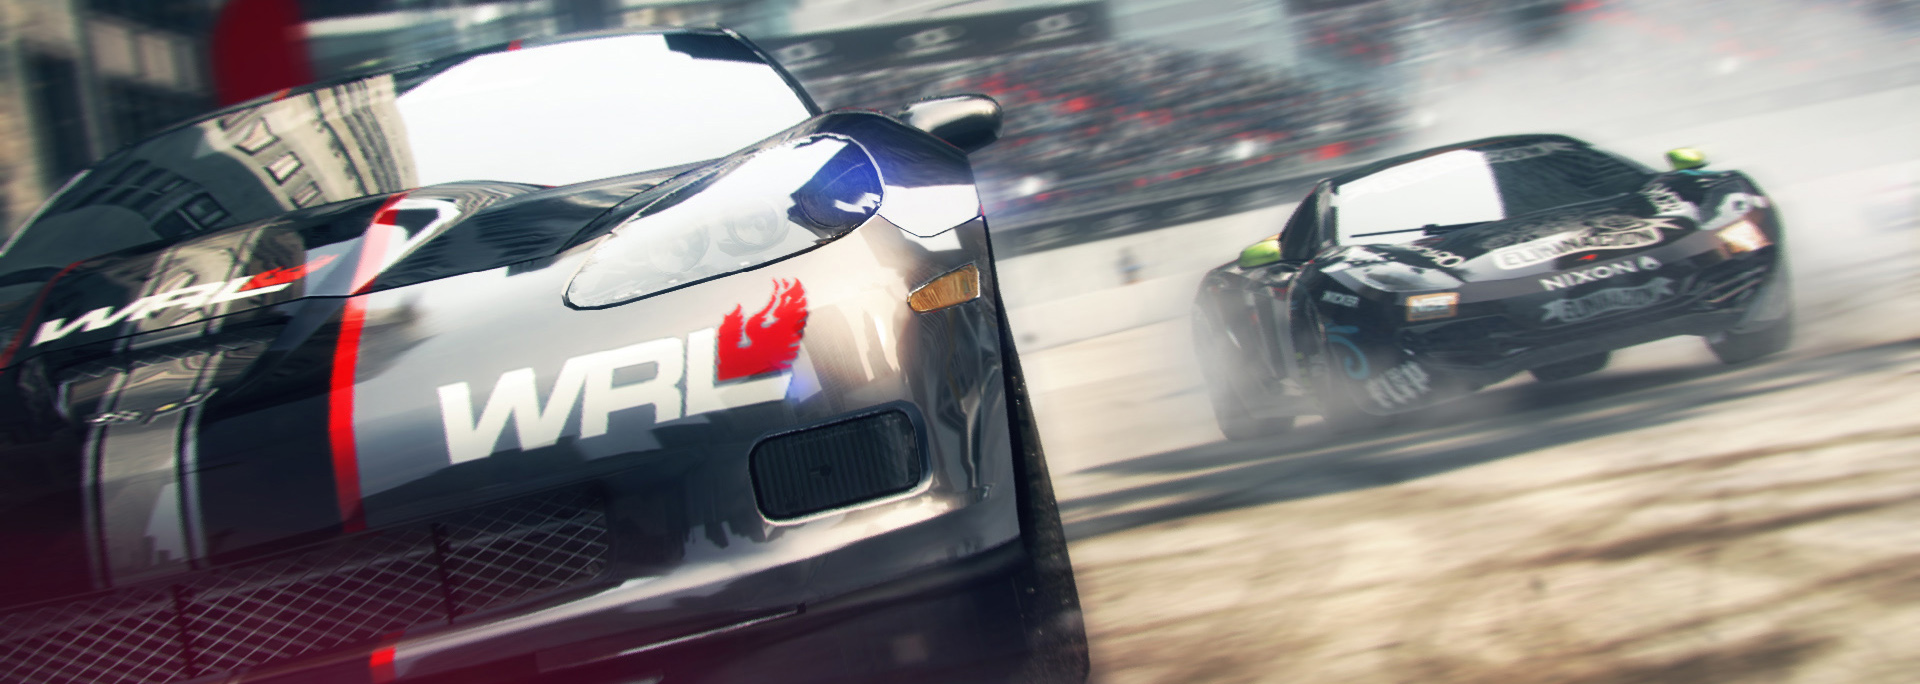 Grid 2 Wikipedia: User Blog:Pseudobread/Grid 2 Review Roundup